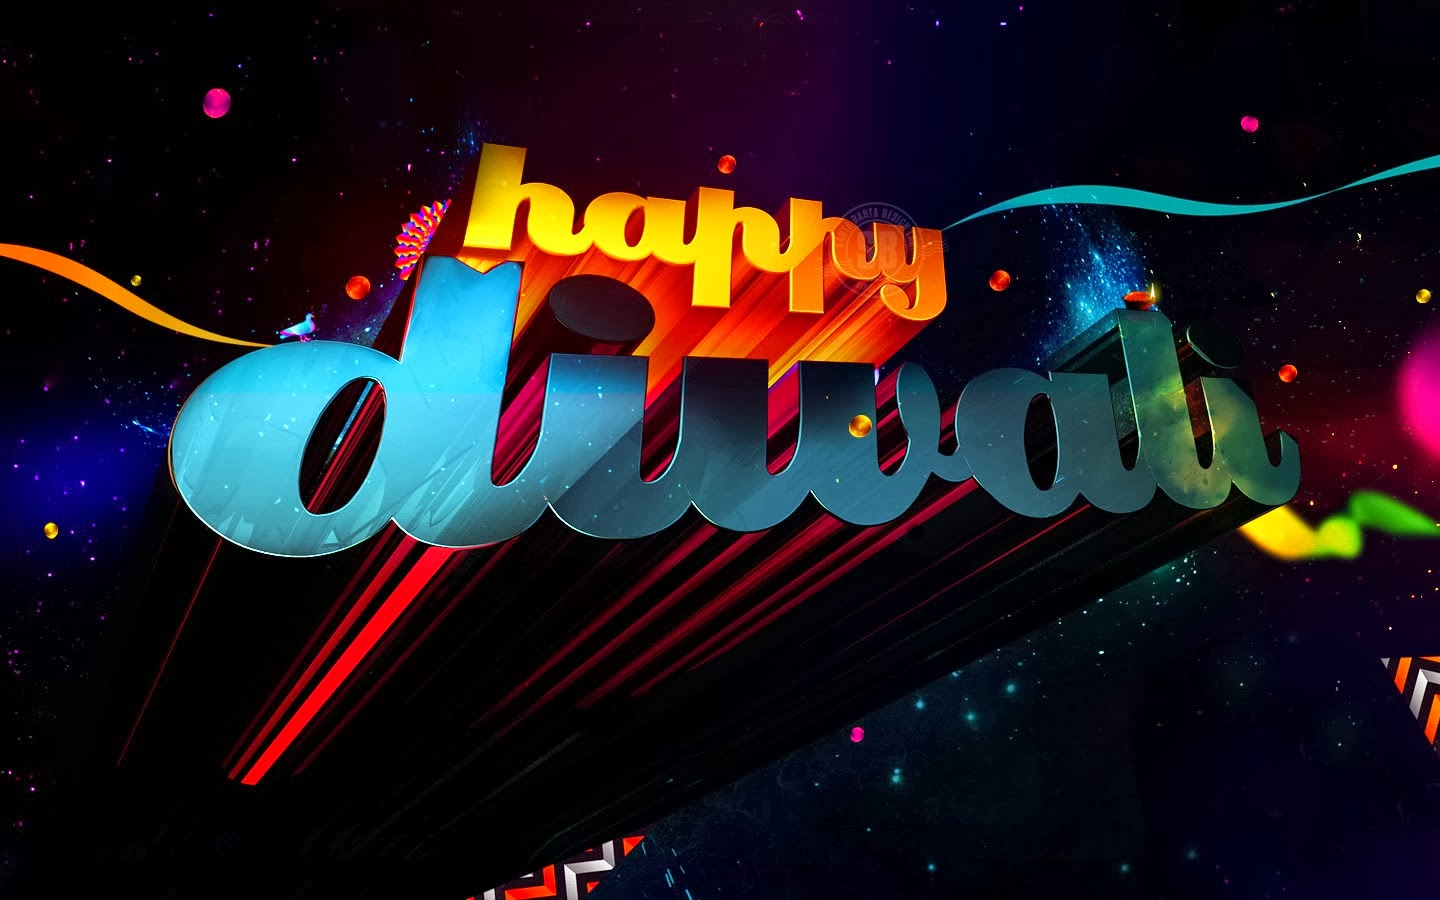 Happy Diwali And New Year Wallpapers: HD Wallpapers: Happy Diwali 2013 Wallpapers